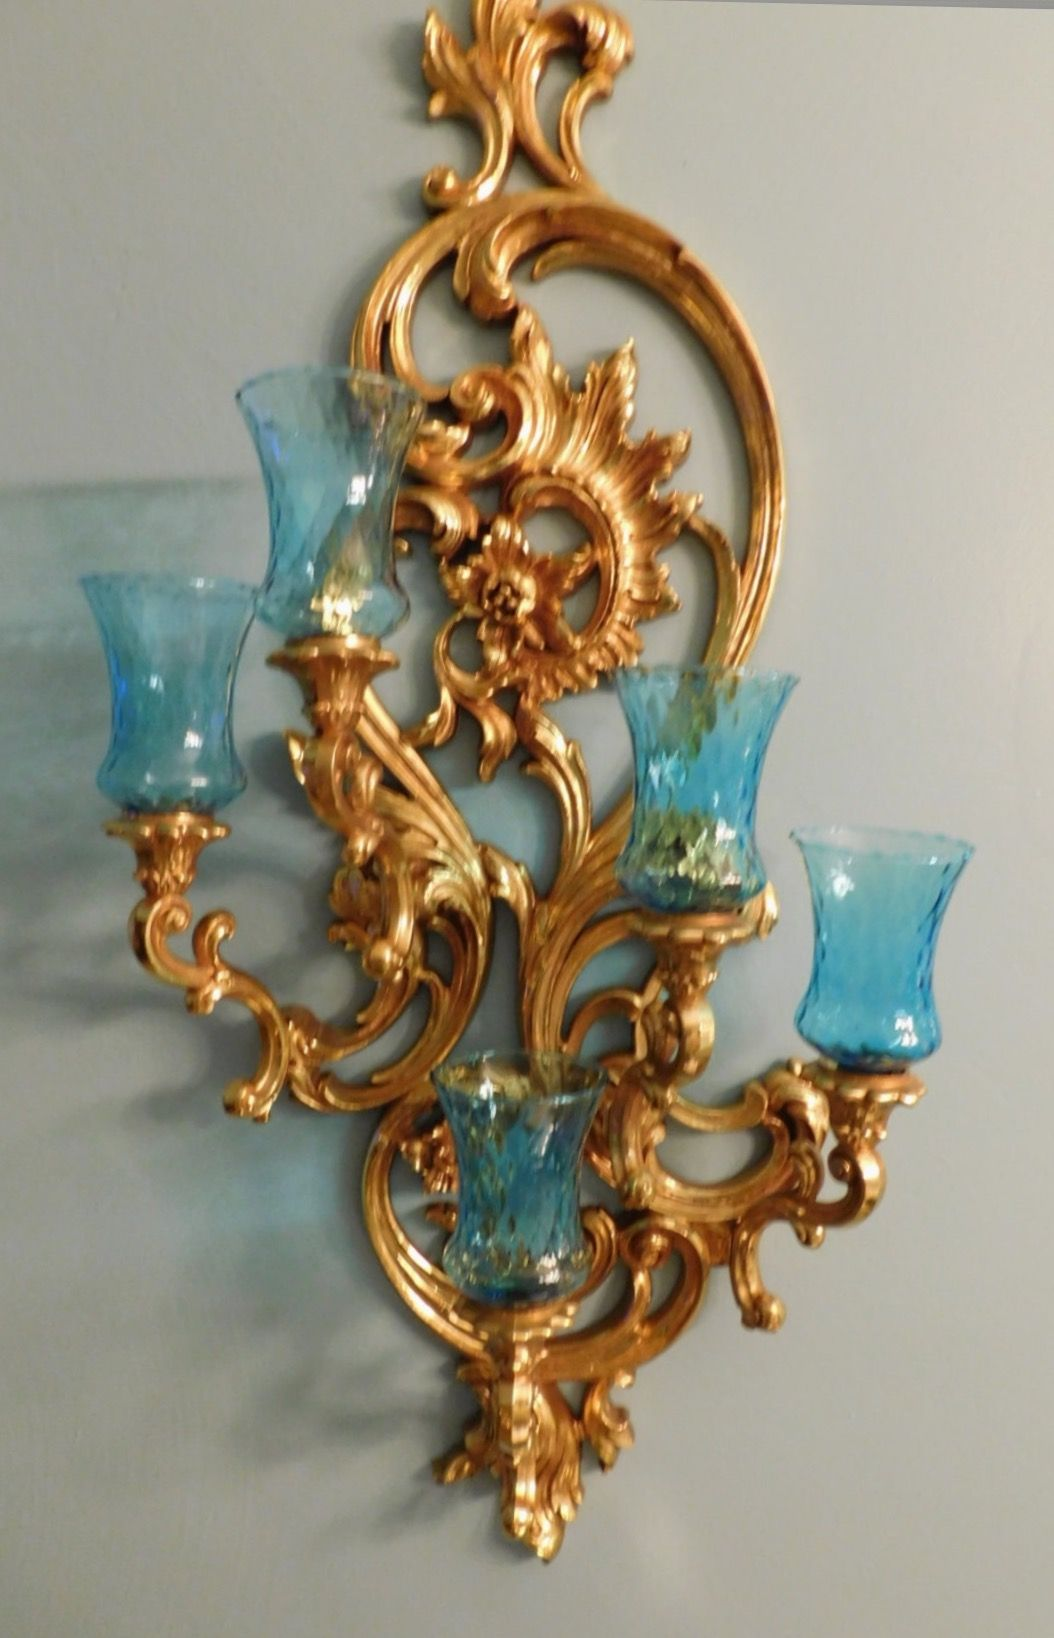 Syroco Dart Homco Home Interiors Gold Candelabra Sconce With Blue Turquoise Glass Votive Holders Gold Walls Home Interiors And Gifts Gold Wall Sconce